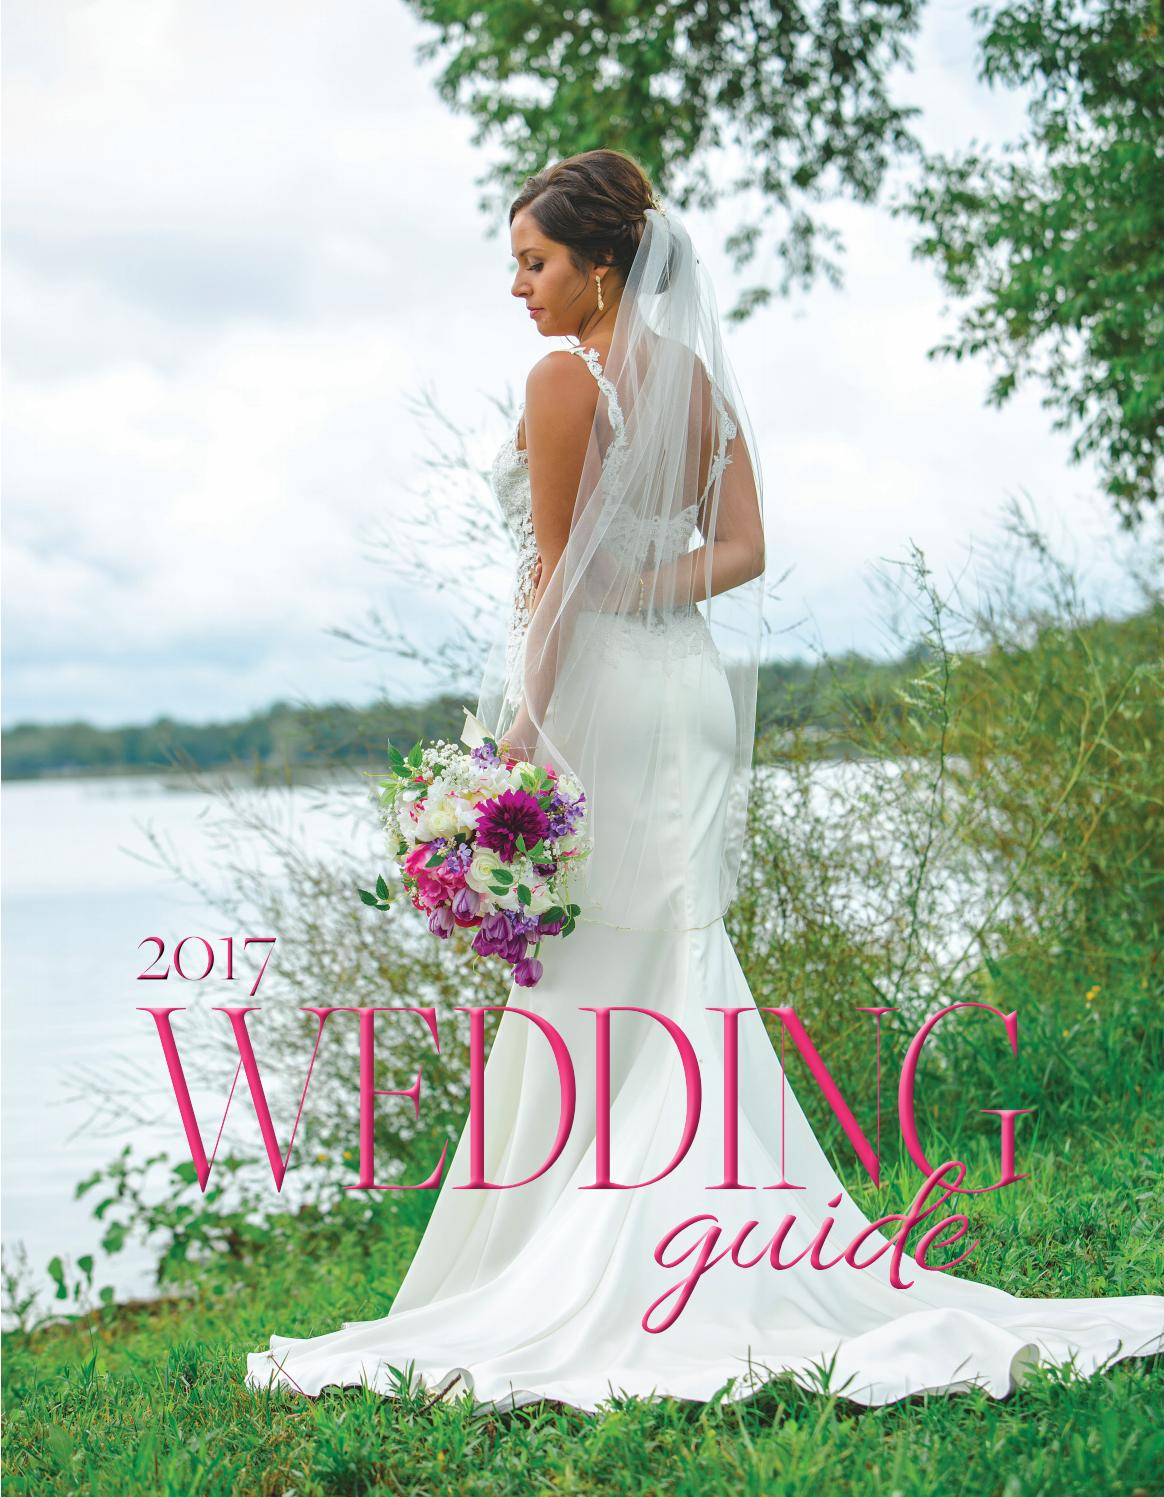 Wedding Guide 2017 By Echo Press Issuu